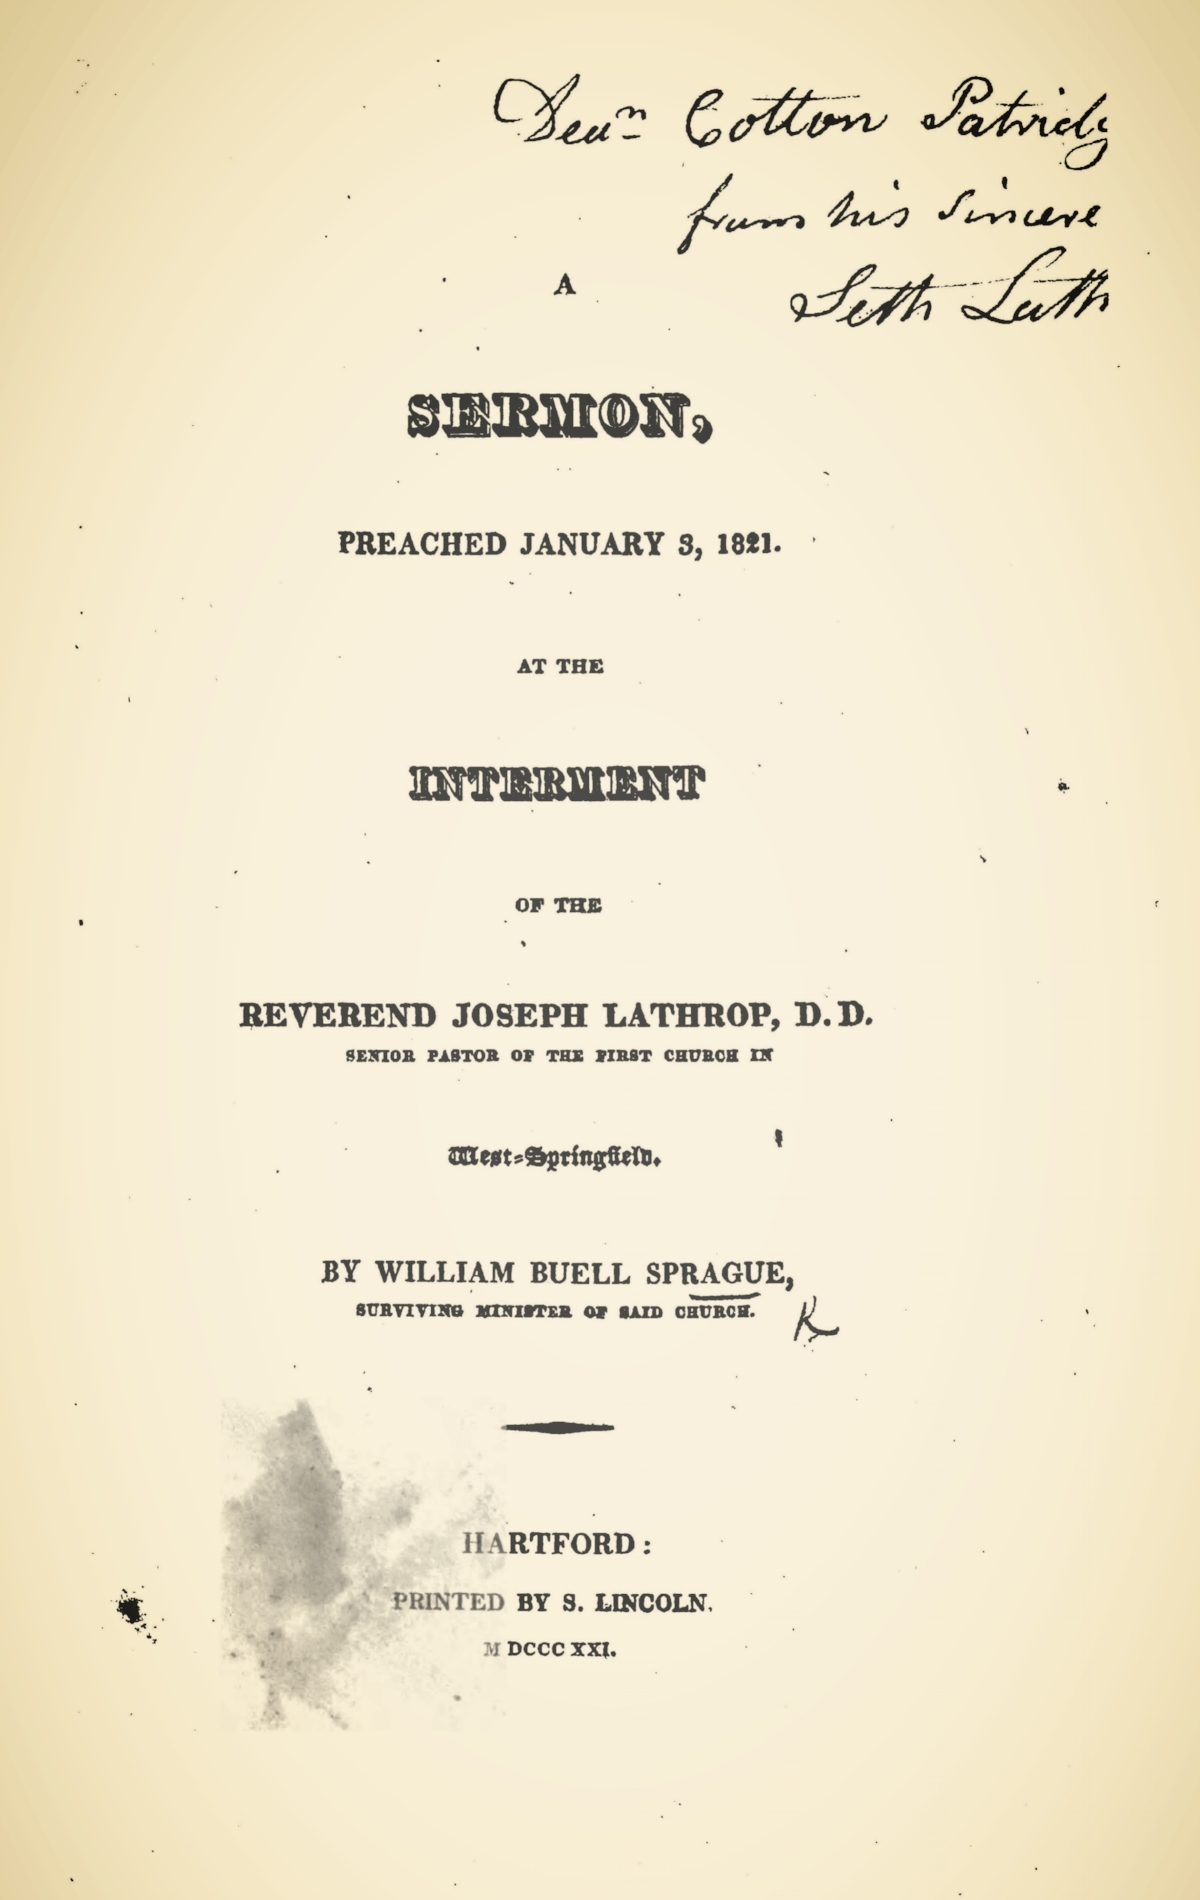 Sprague, William Buell, A Sermon, Preached January 3, 1821, at the Interment of the Rev. Joseph Lathrop Title Page.jpg